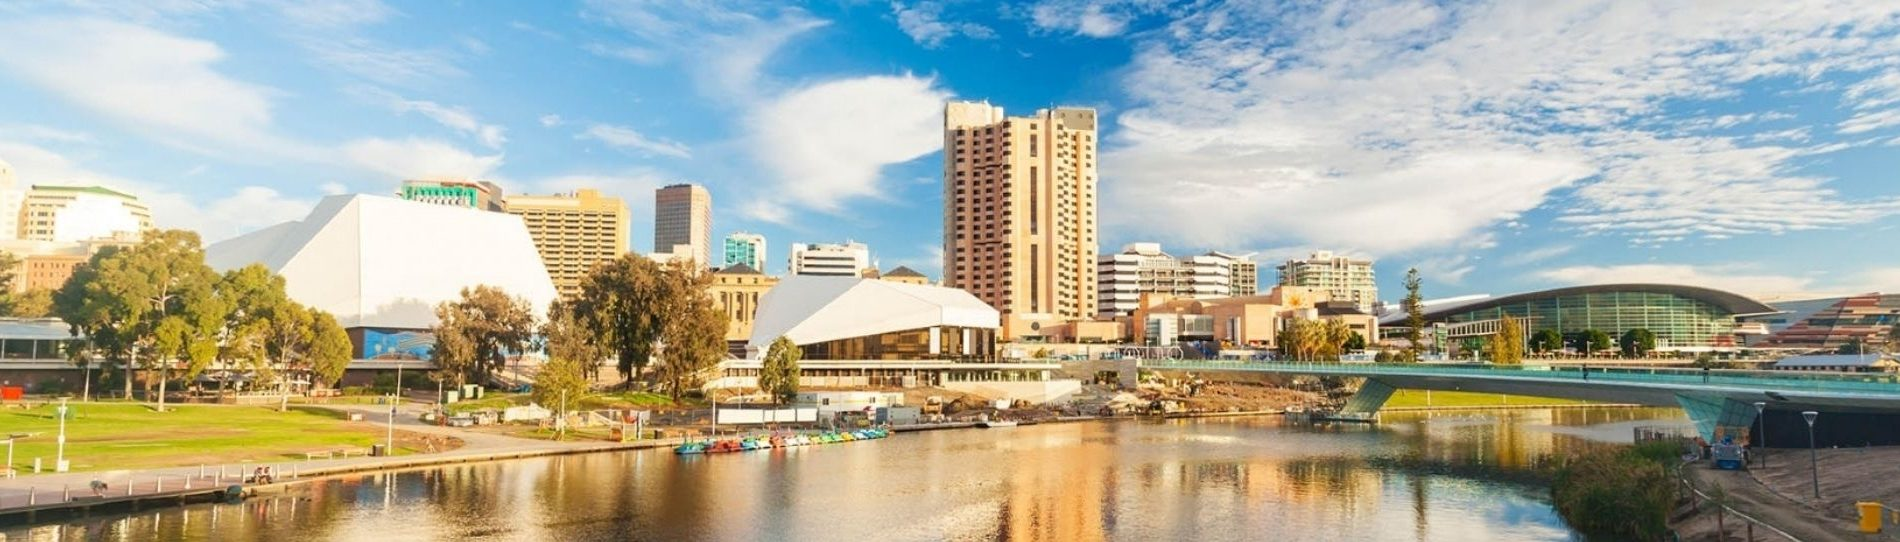 group accommodation adelaide team trips